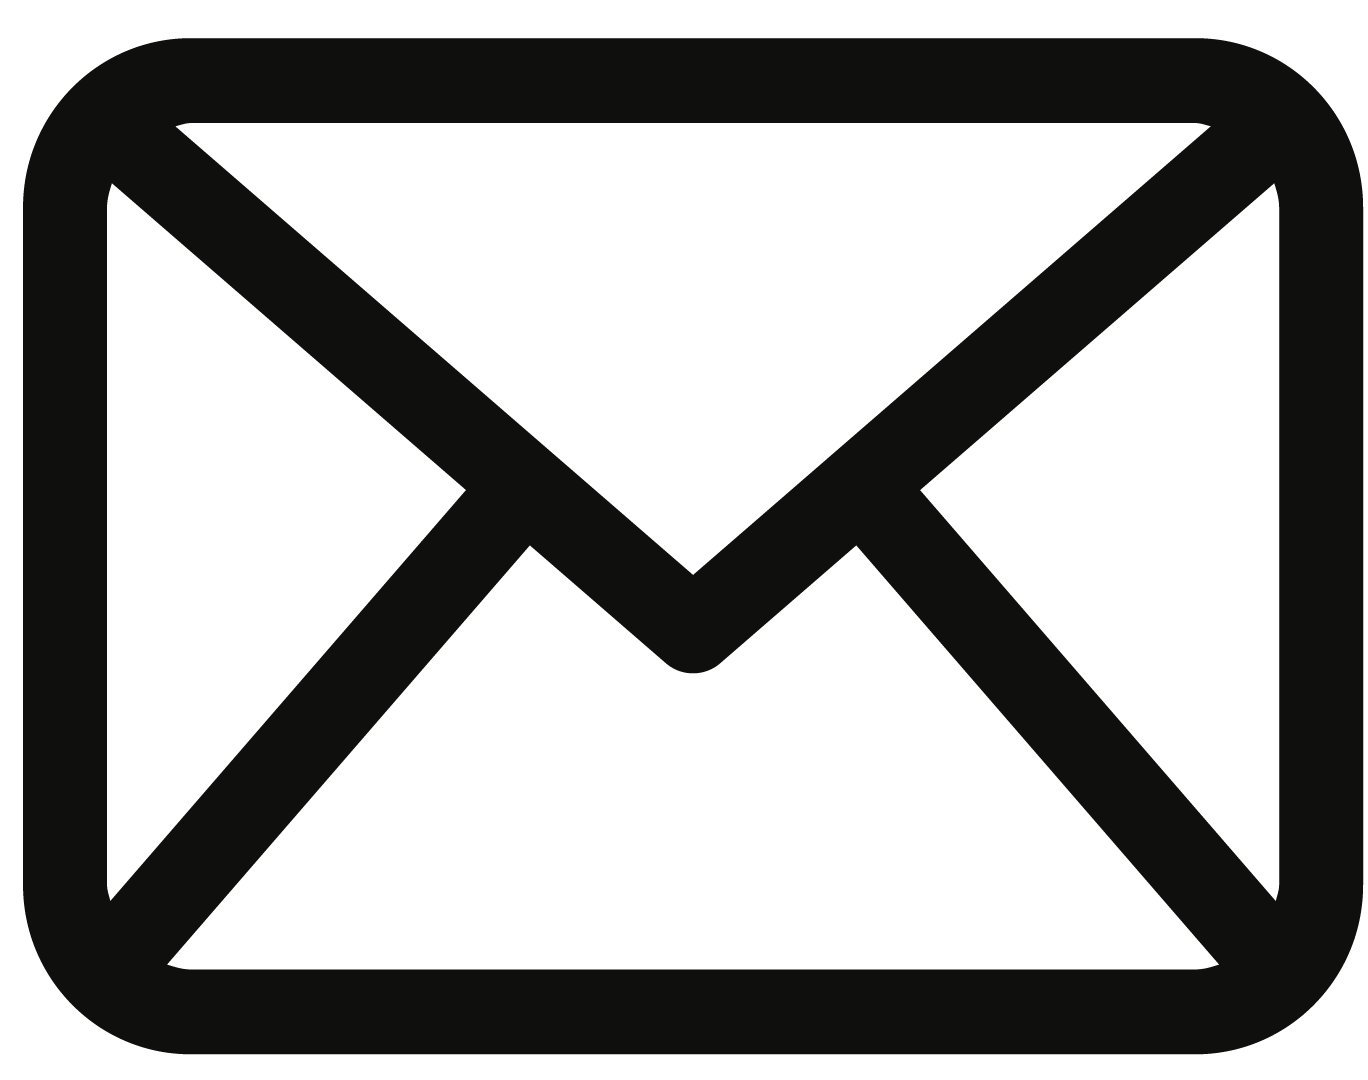 kisspng-sms-email-text-messaging-logo-computer-icons